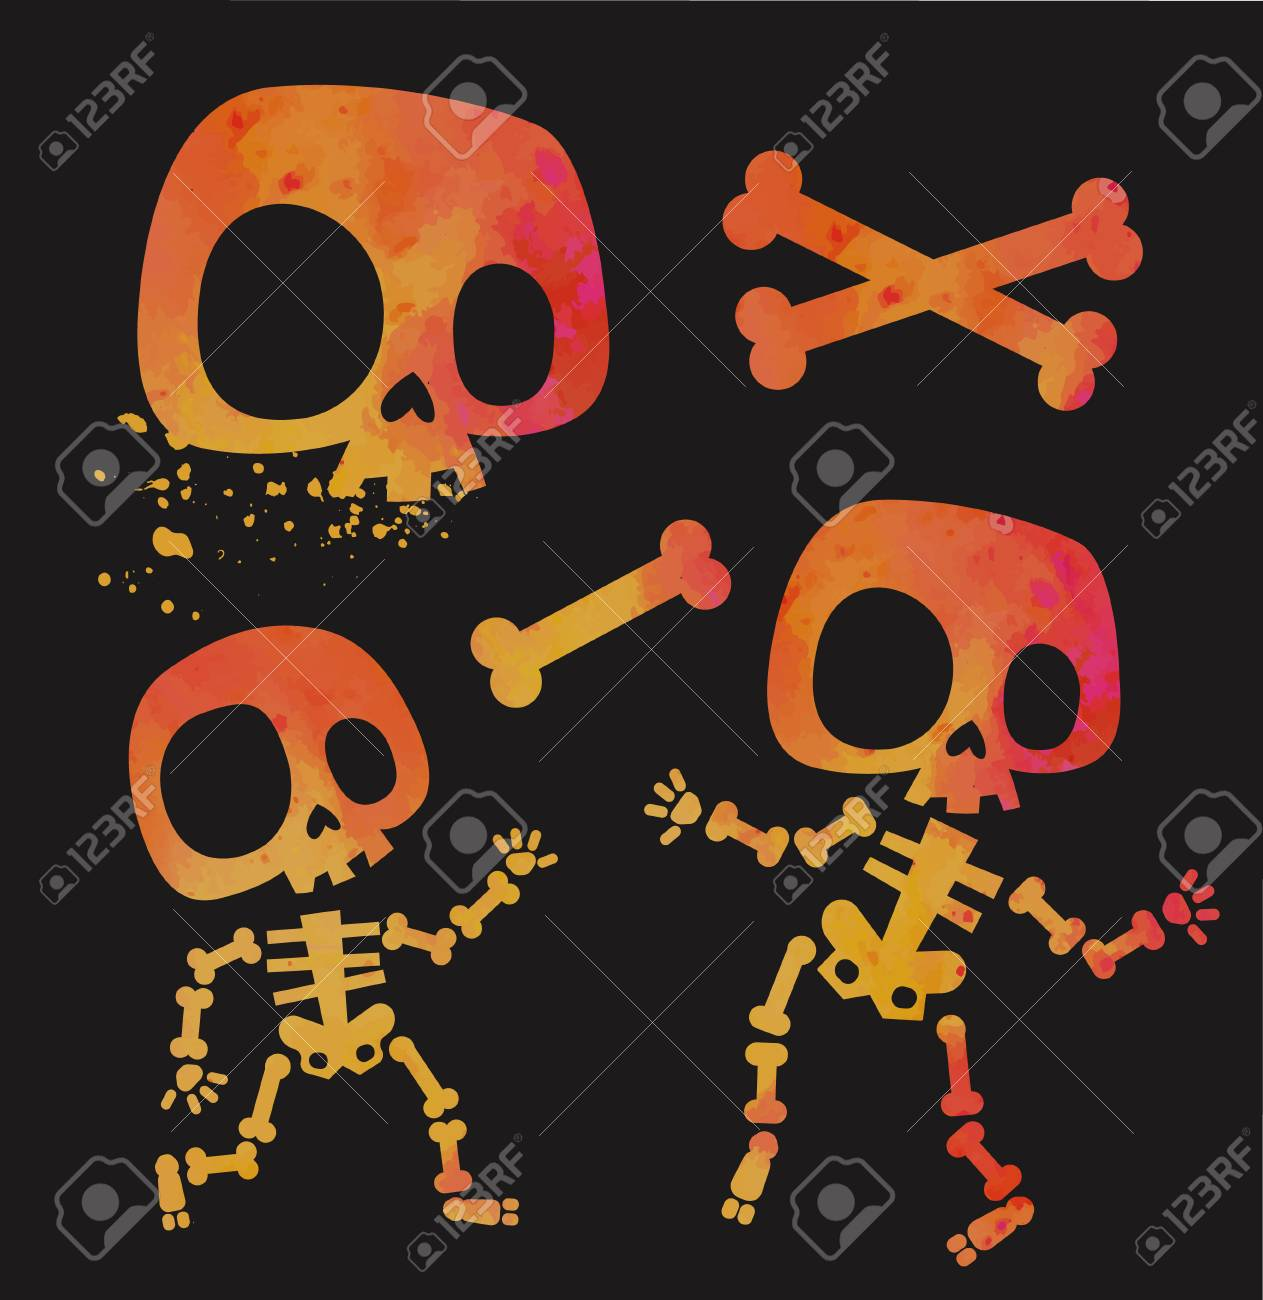 Funny Little Death With A Large Scythe And Pumpkin Title Happy Halloween From Bones Isolated